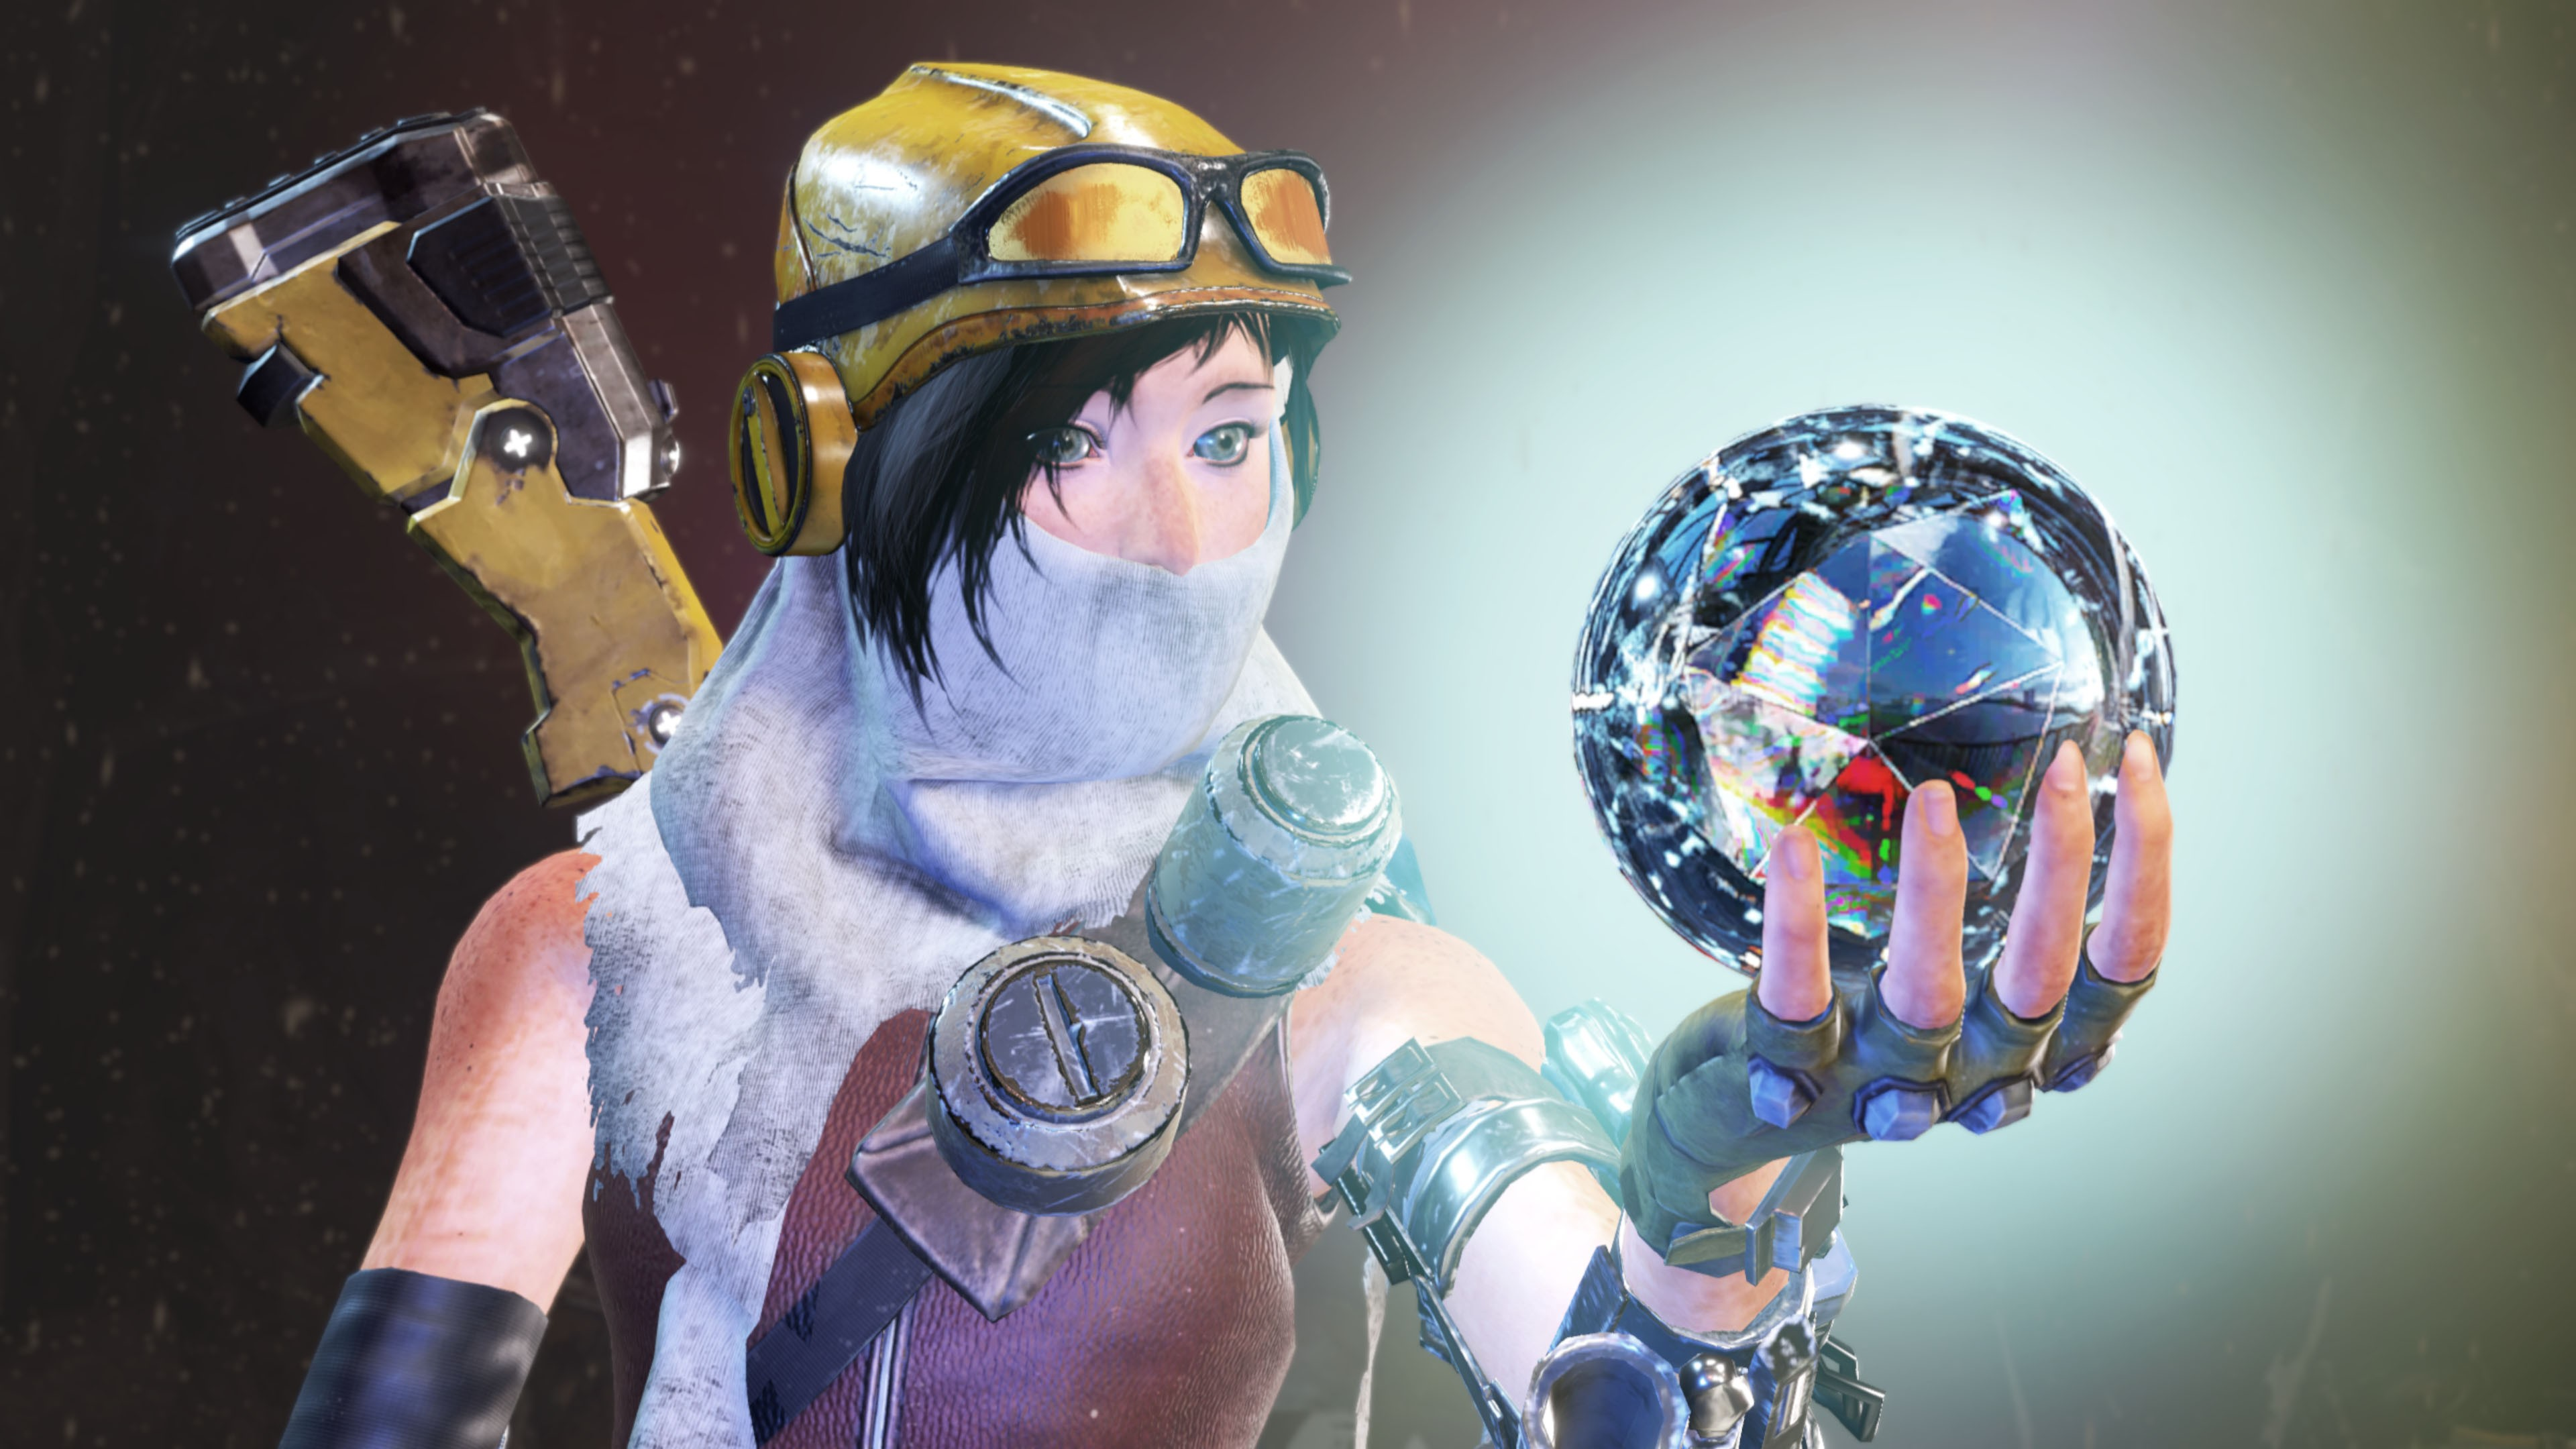 Wallpaper Recore Kai Brehn Pc Ps4 Playstation 4 Xbox